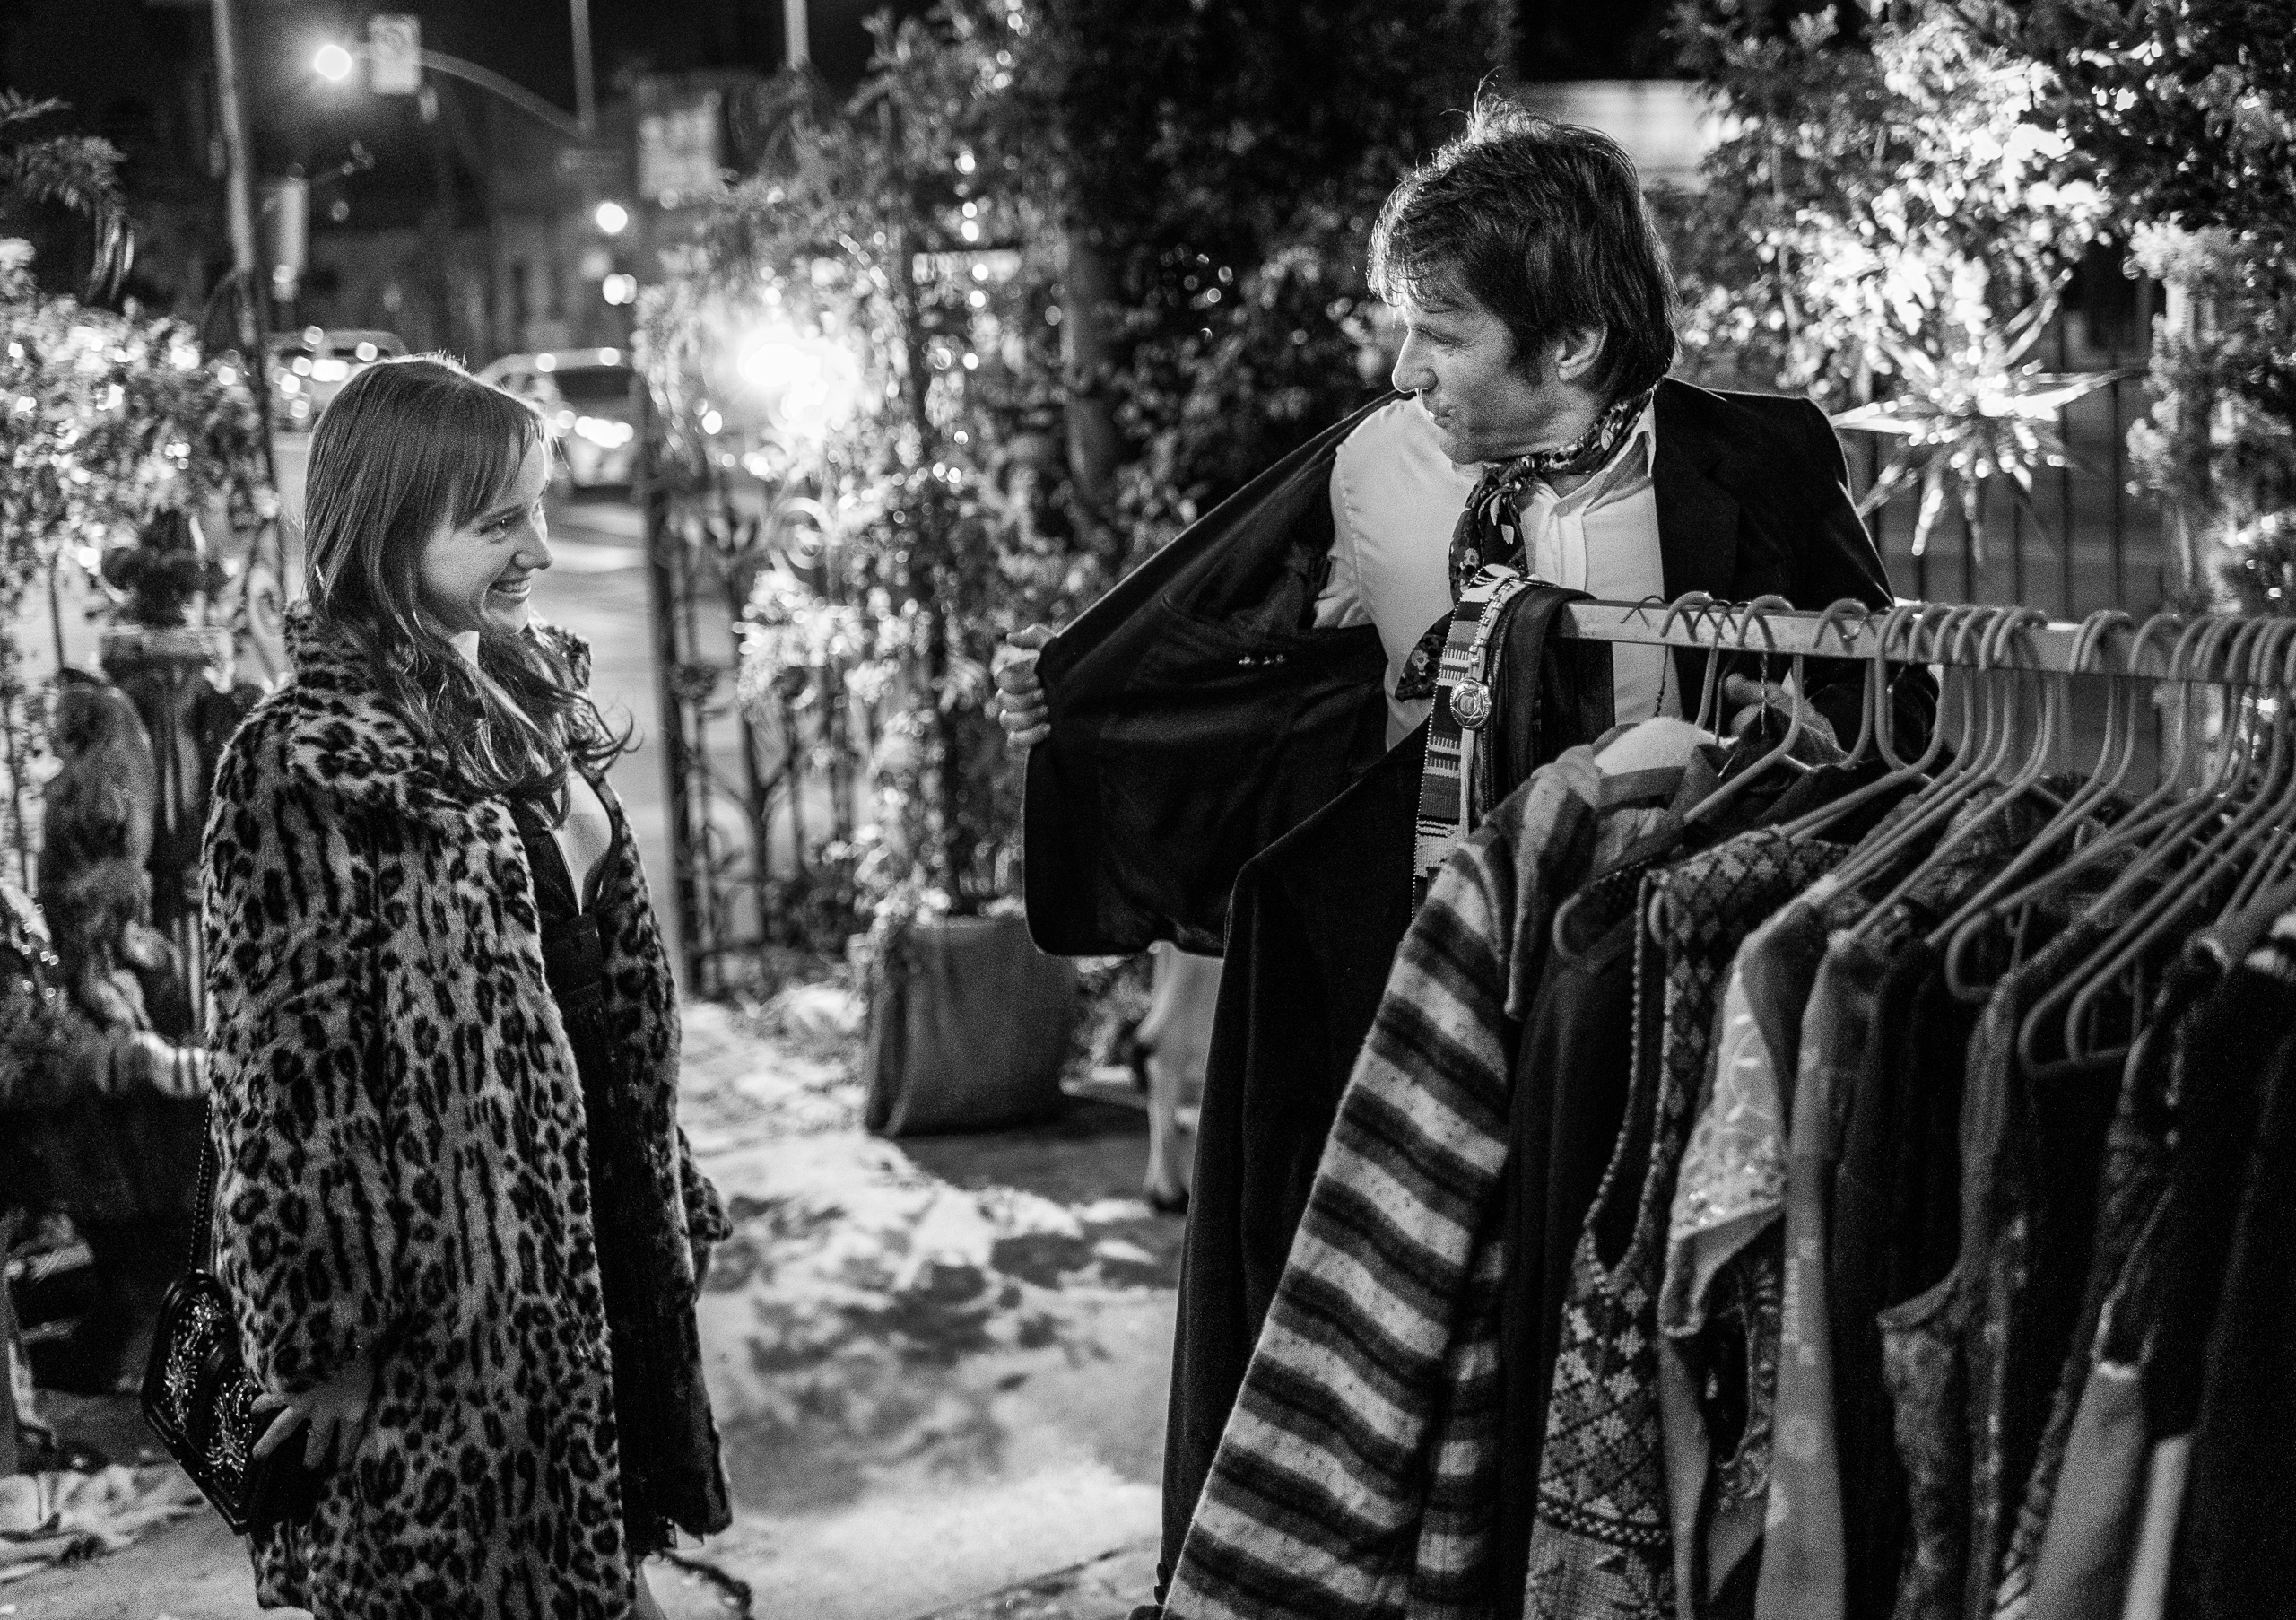 Shopping for new clothes at the LA Tarot Society's Holiday Solstice Party in Hollywood